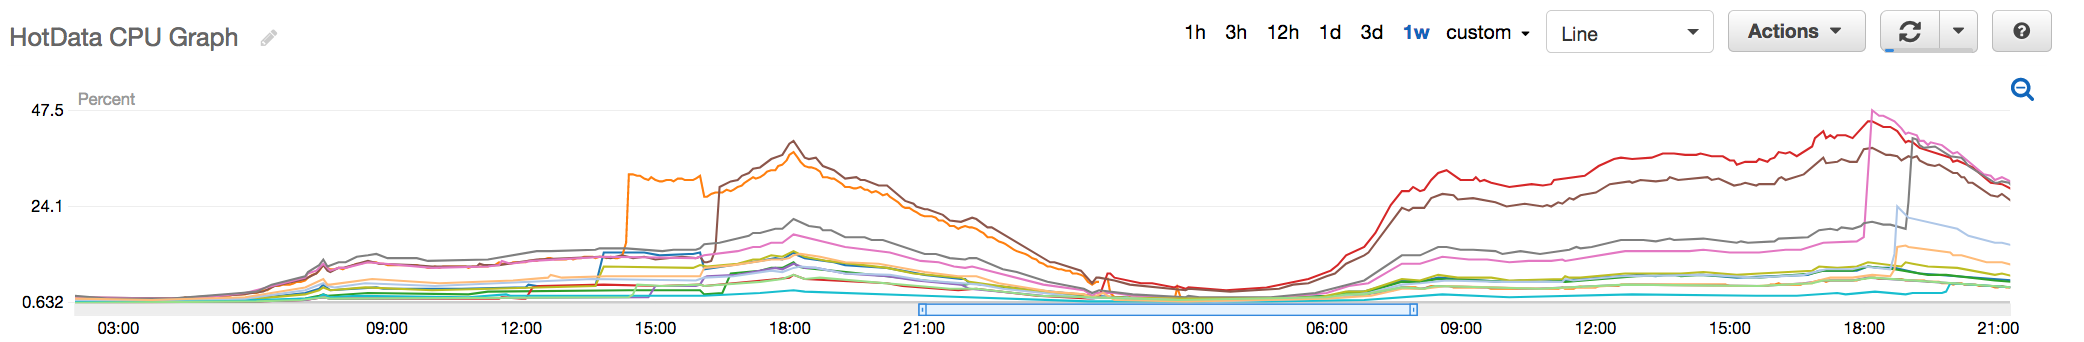 Fig 5. Old Hot Data Redis Cluster with CPU peaking at around 48%